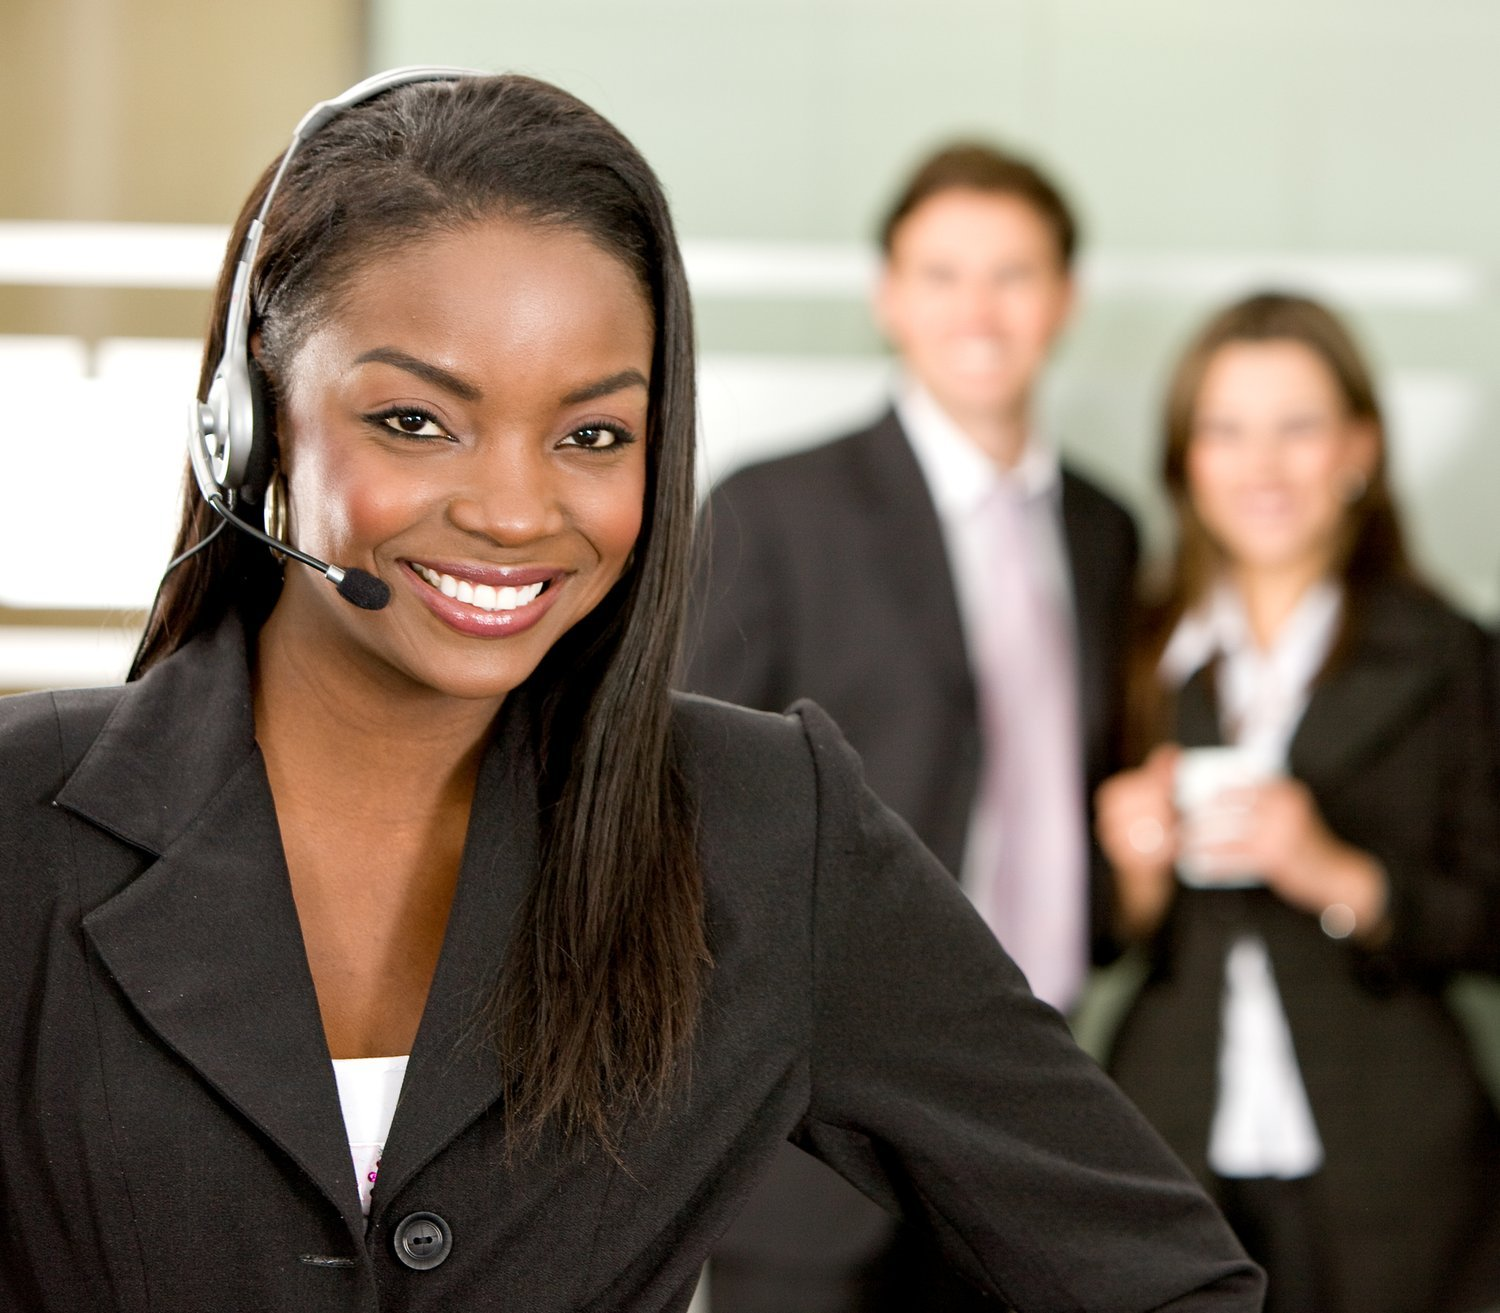 business customer support operator woman smiling in an office